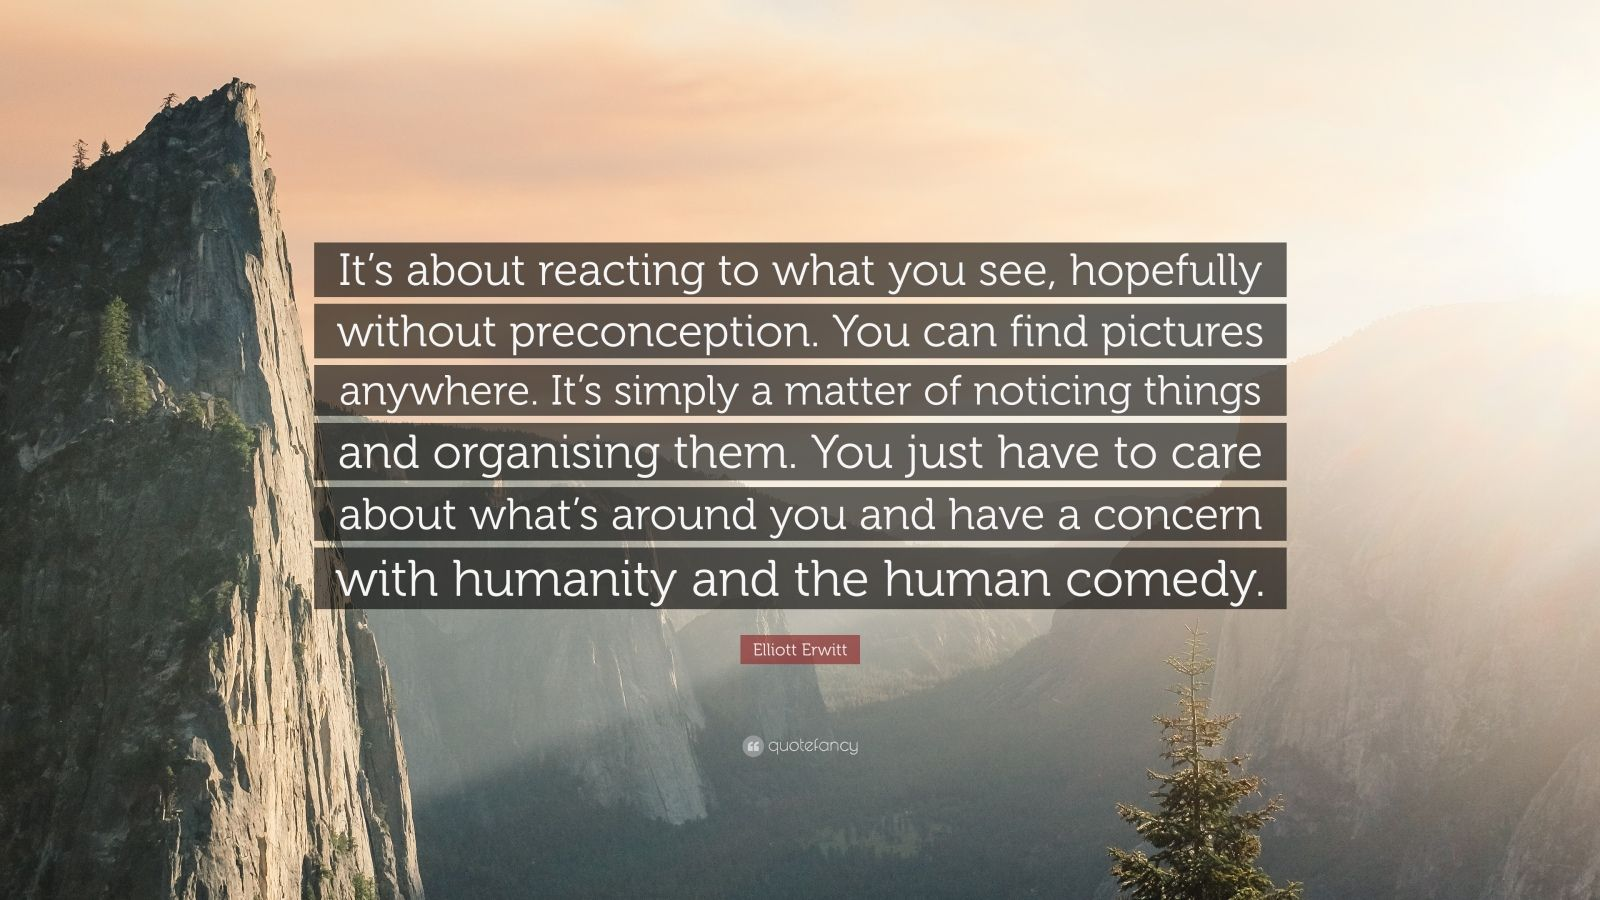 """Elliott Erwitt Quote: """"It's about reacting to what you see, hopefully without preconception. You can find pictures anywhere. It's simply a matter of noticing things and organising them. You just have to care about what's around you and have a concern with humanity and the human comedy."""""""